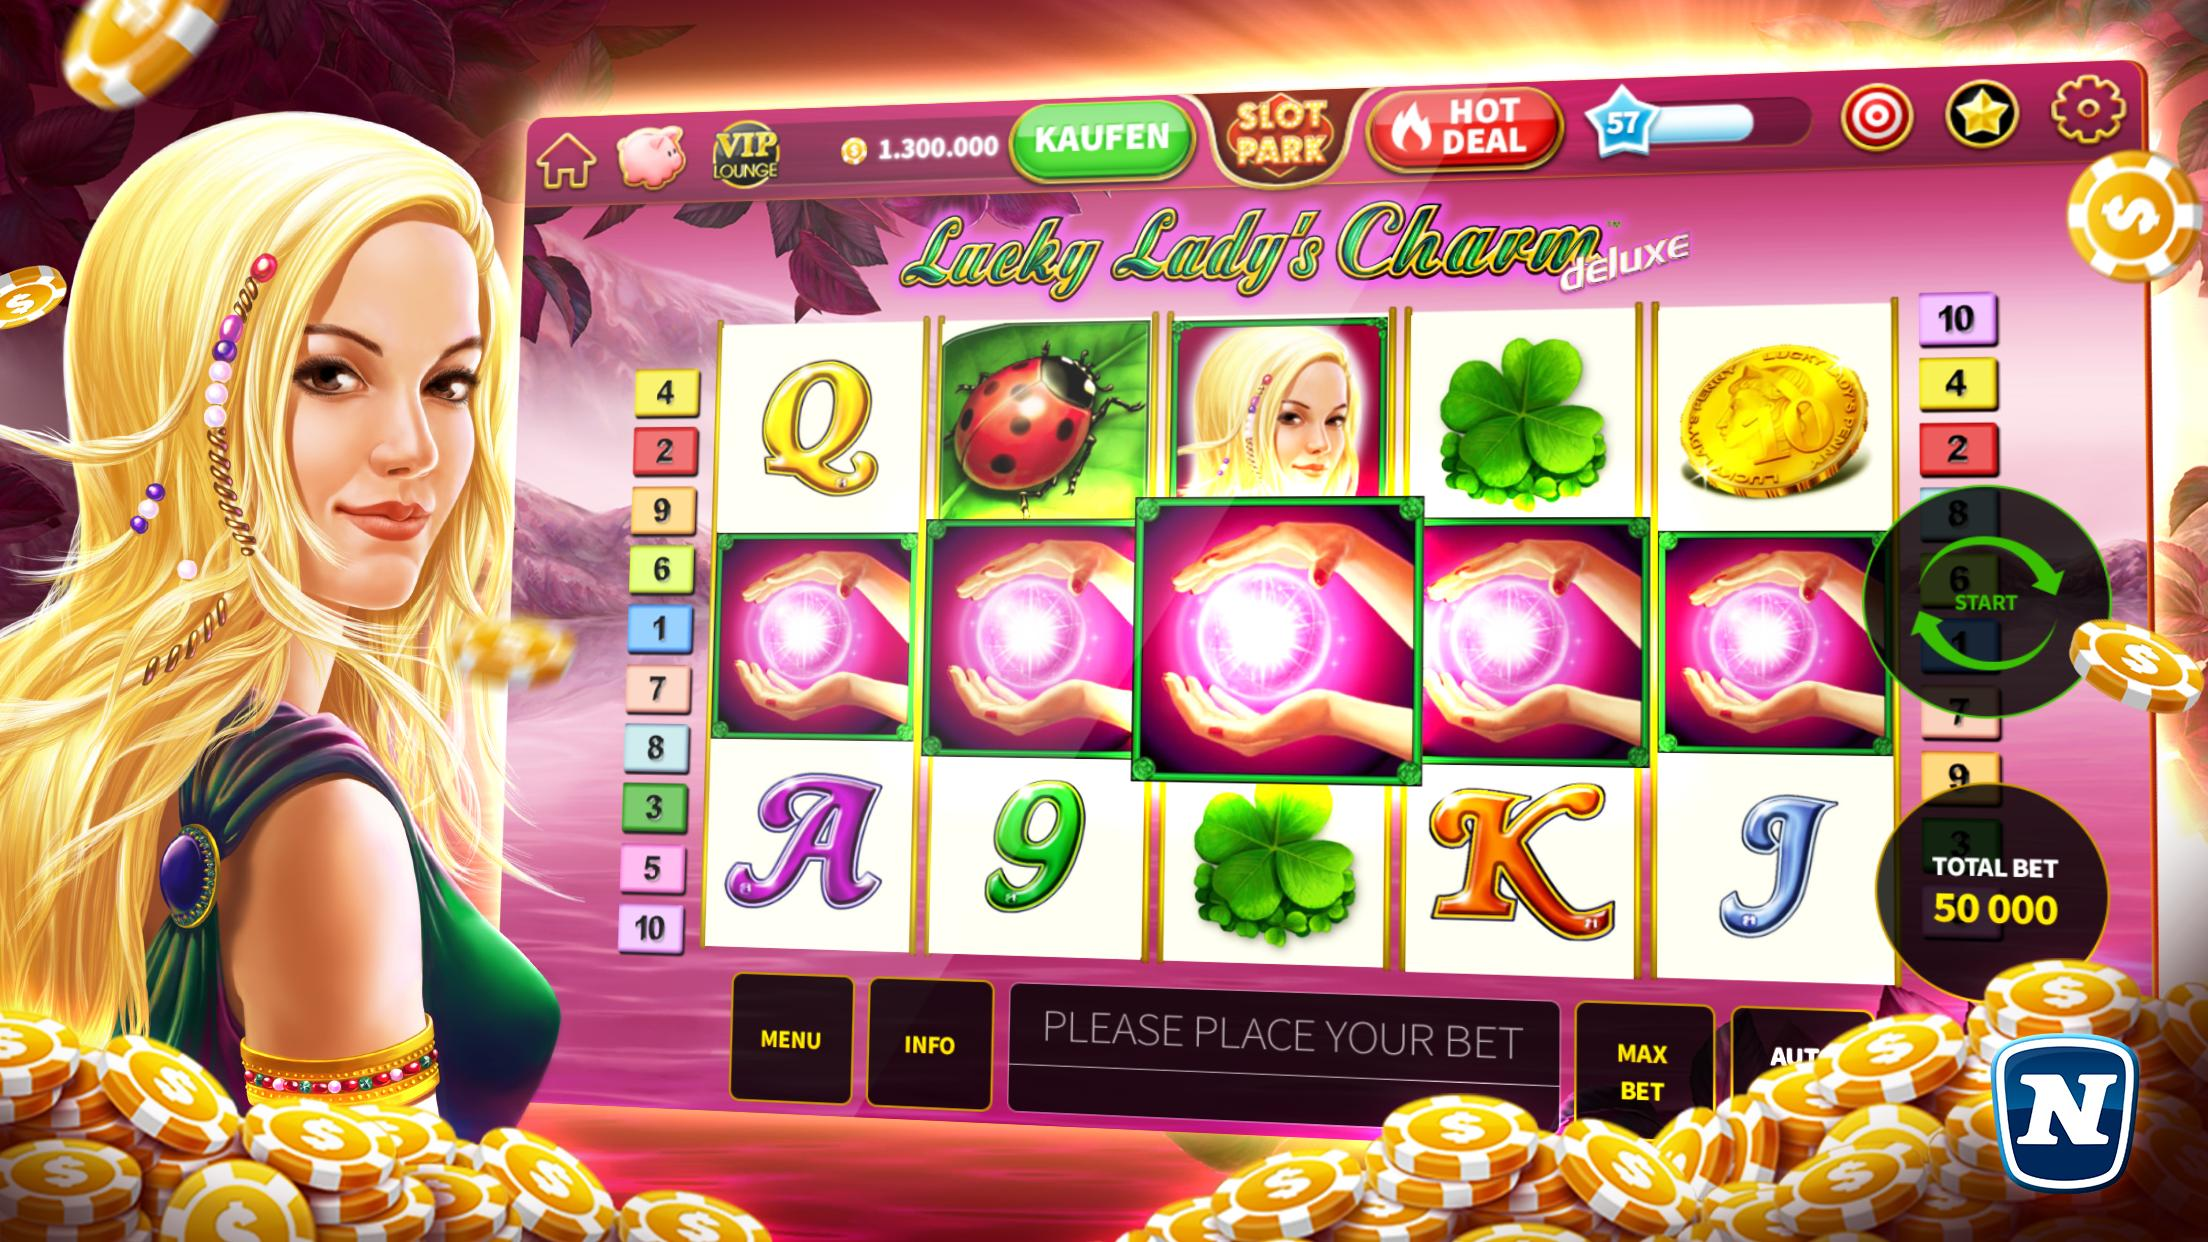 Slotpark Online Casino Games & Free Slot Machine 3.21.1 Screenshot 10